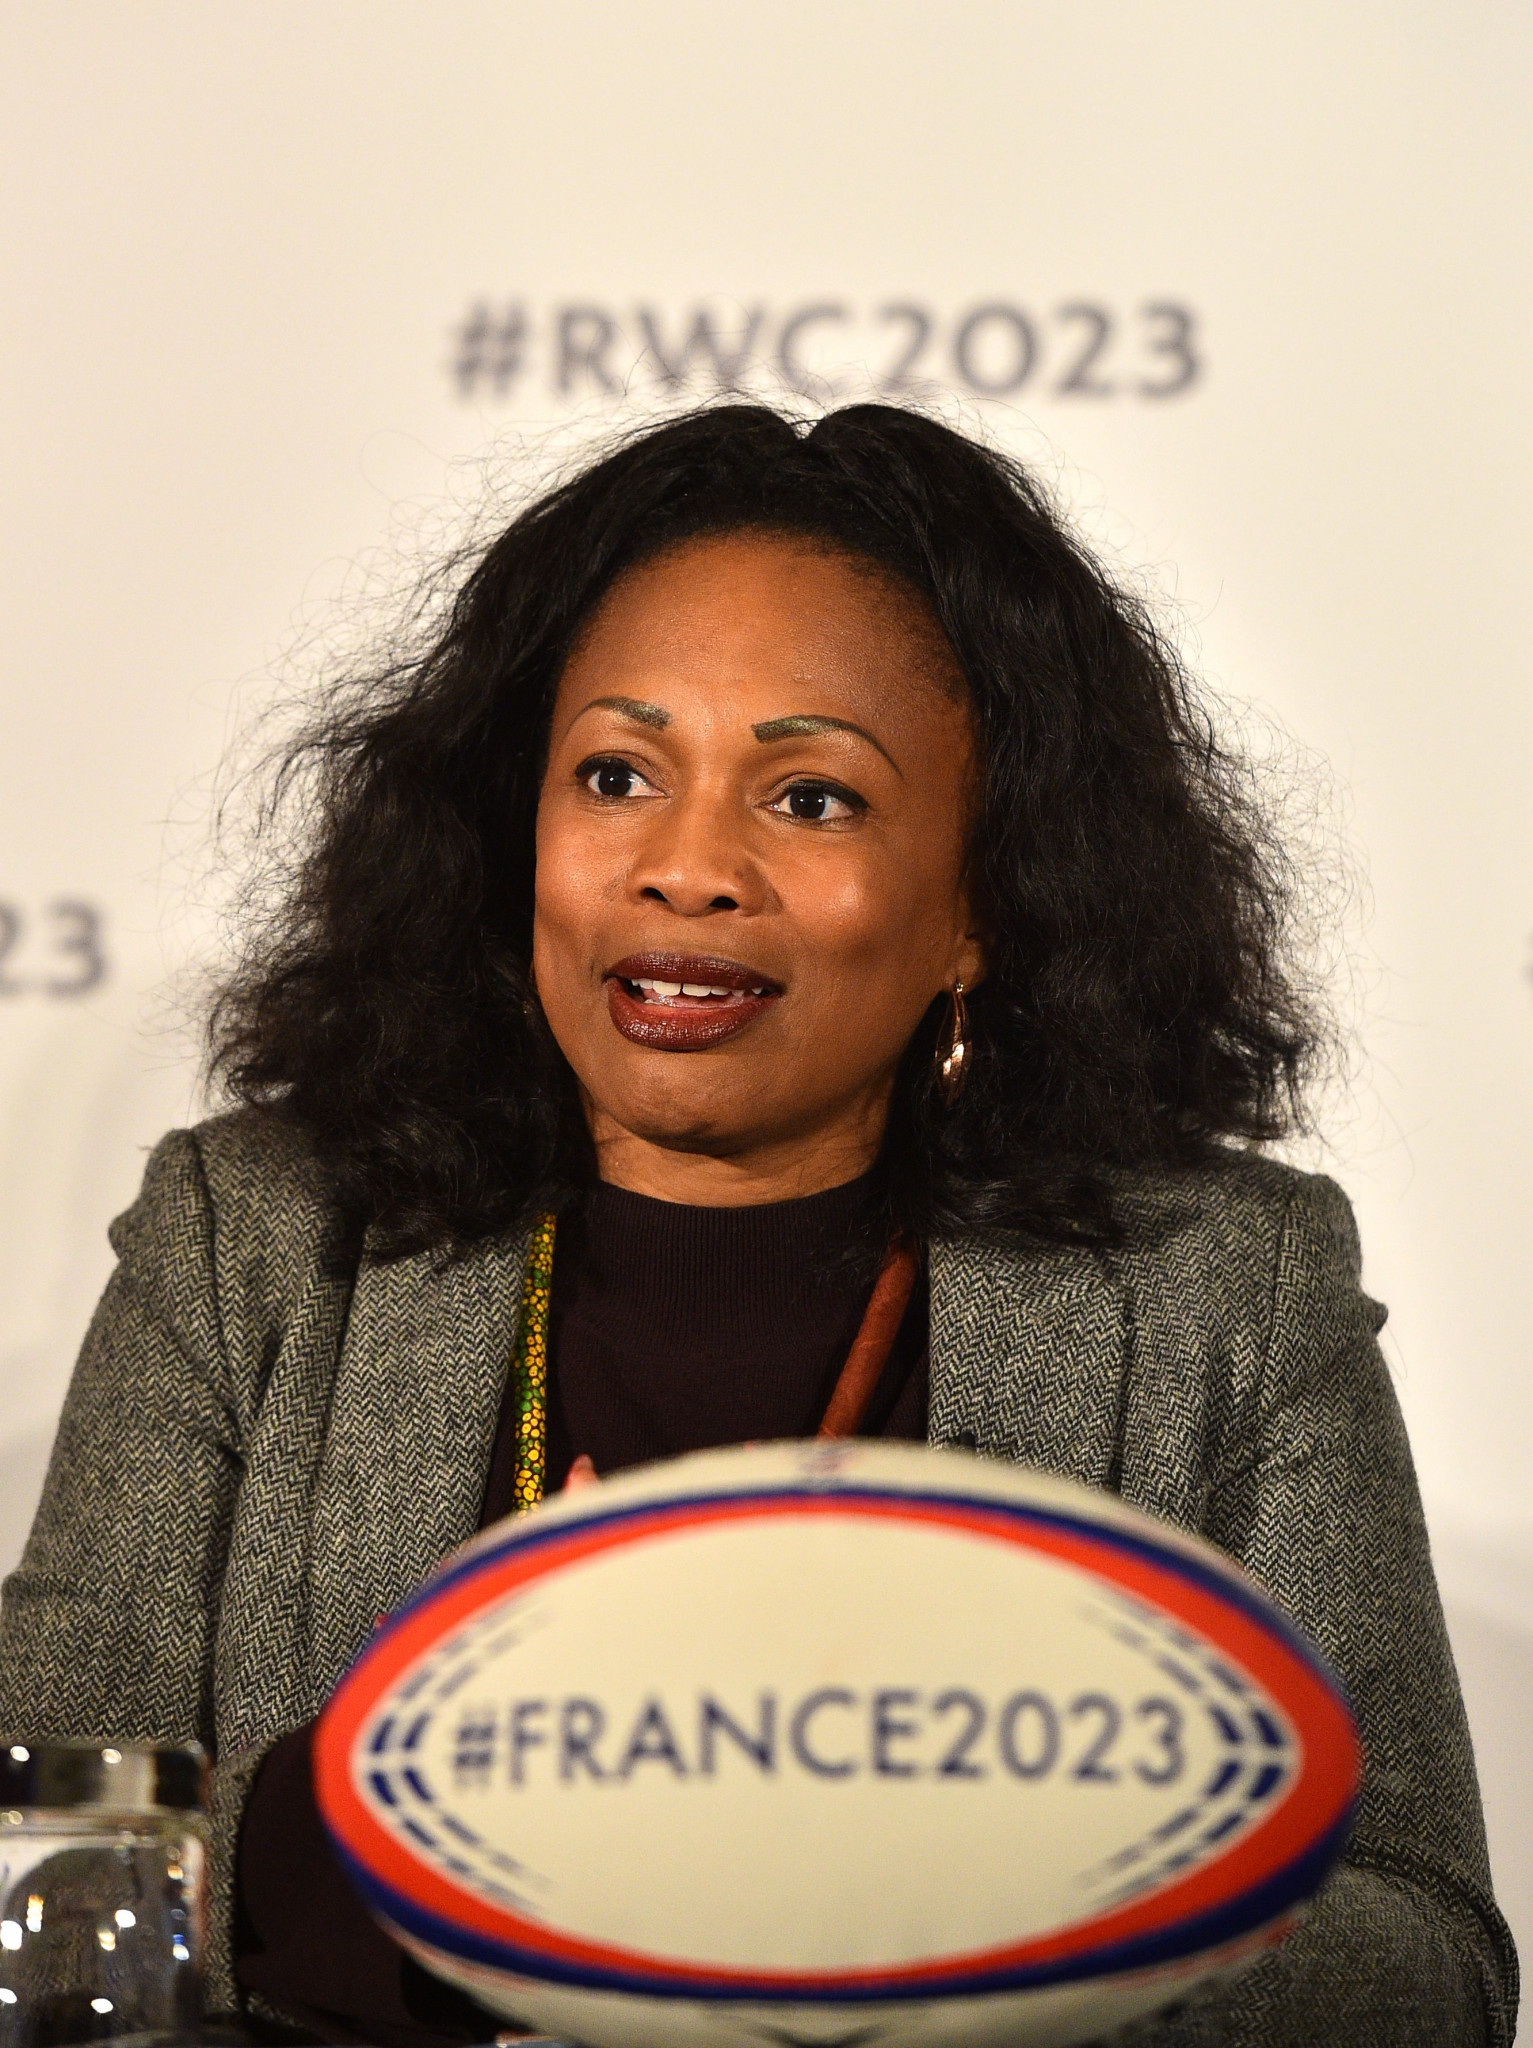 French Sports Minister Laura Flessel led her country's delegation who were making a presentation in London to host the 2023 Rugby World Cup for the third time ©Getty Image